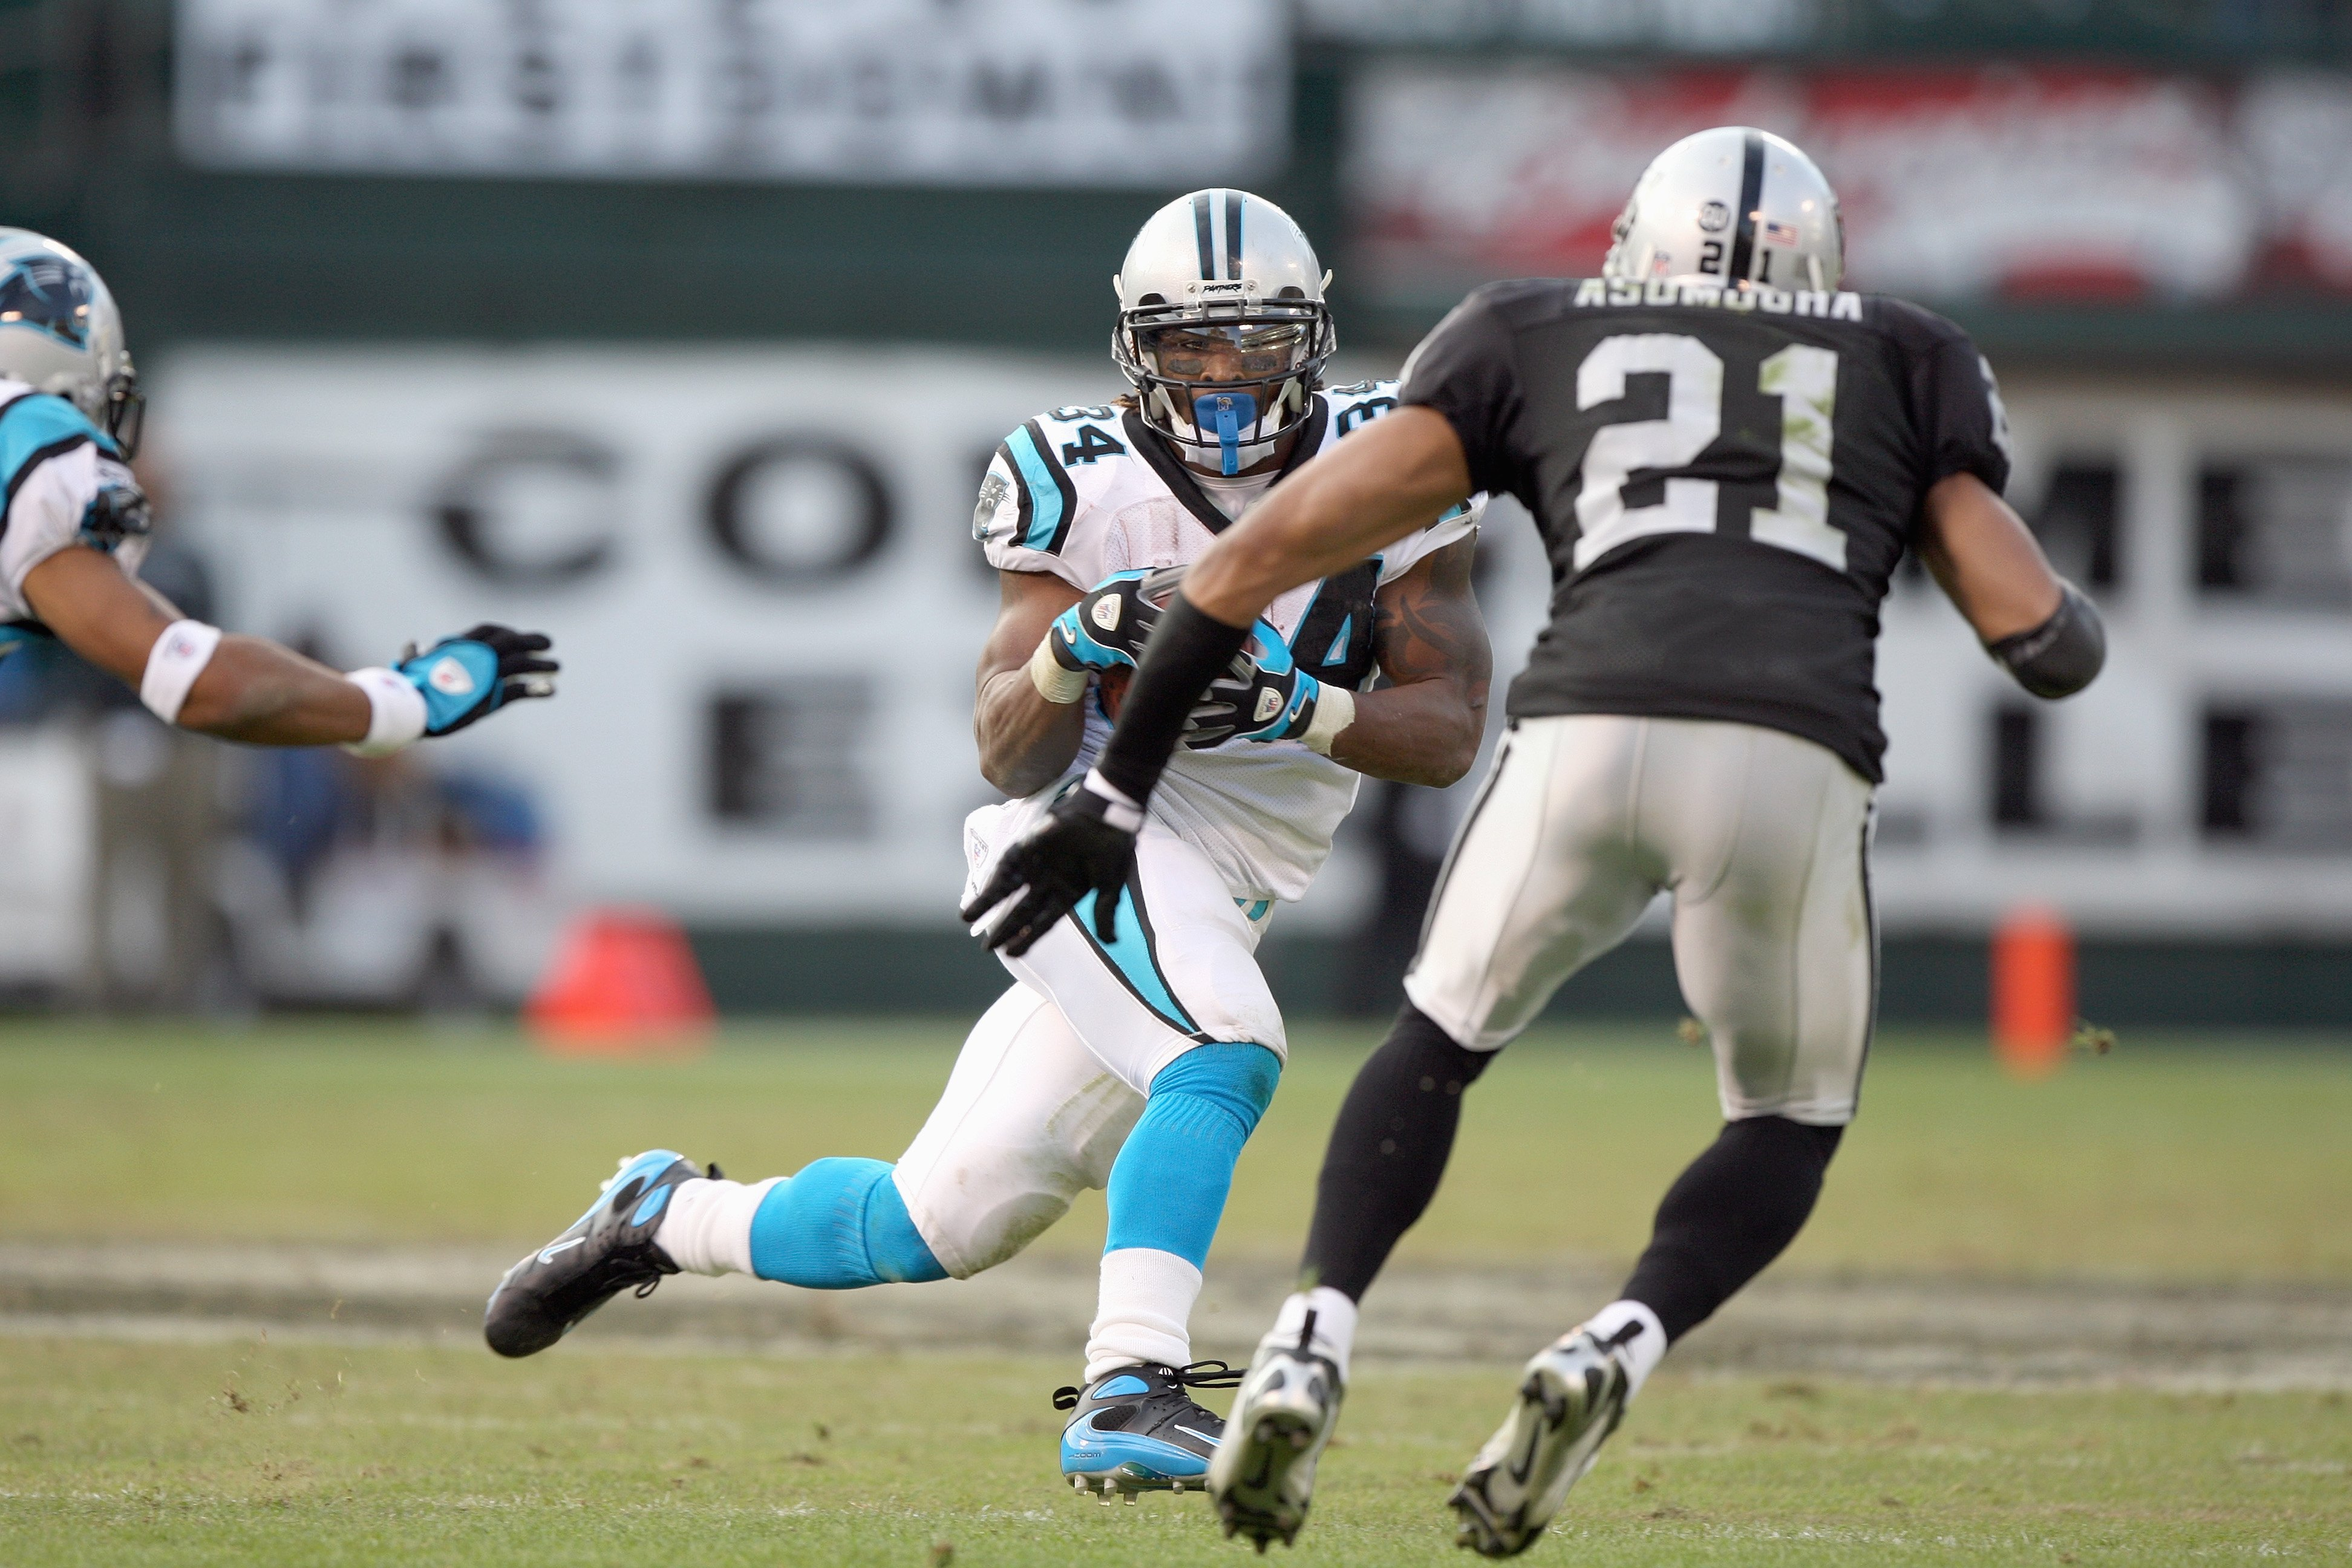 OAKLAND - NOVEMBER 9:  DeAngelo Williams #34 of the Carolina Panthers carries the ball against Nnamdi Asomugha #21 of the Oakland Raiders at the Oakland-Alameda County Coliseum on November 9, 2008 in Oakland, California. (Photo by: Jed Jacobsohn/Getty Ima